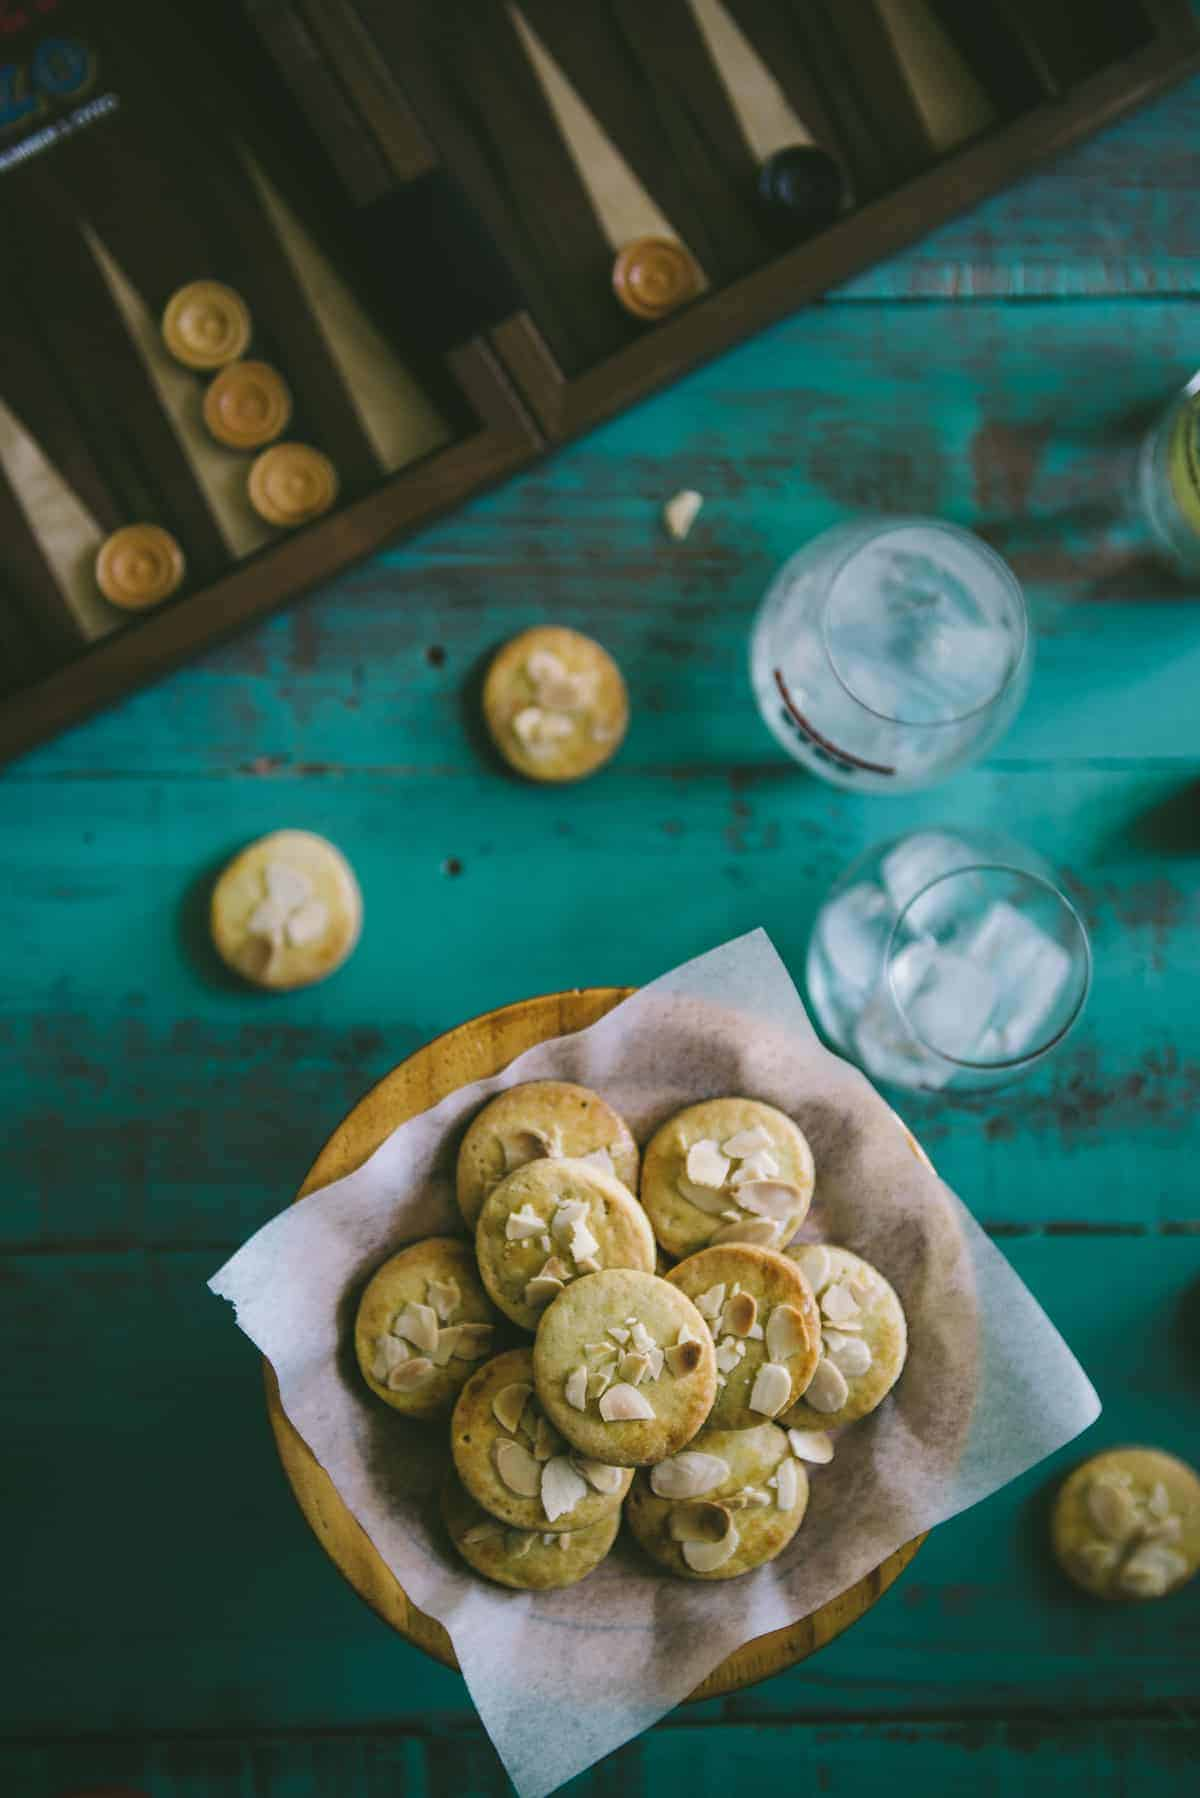 biscuits made with ouzo and lemon on a cake stand